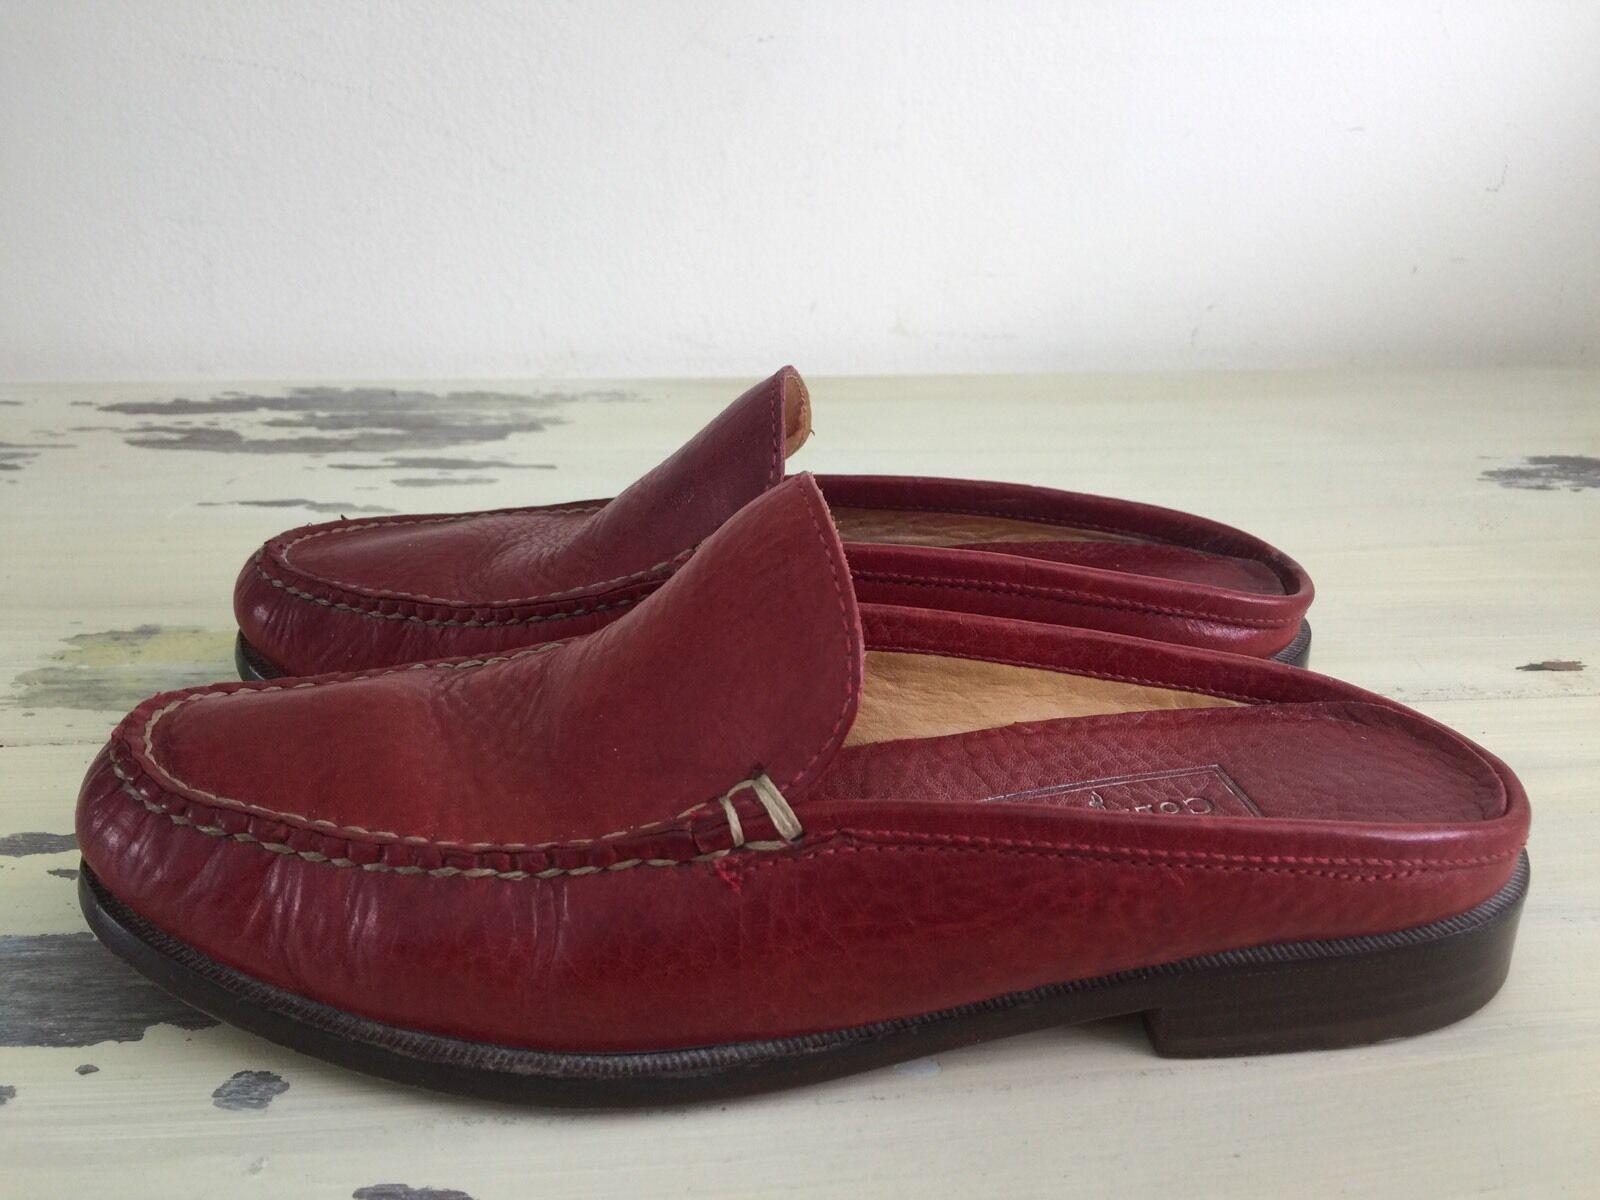 COLE HAAN COUNTRY - Womens Red Leather Slip-on Backless Loafer shoes, Sz 7 B